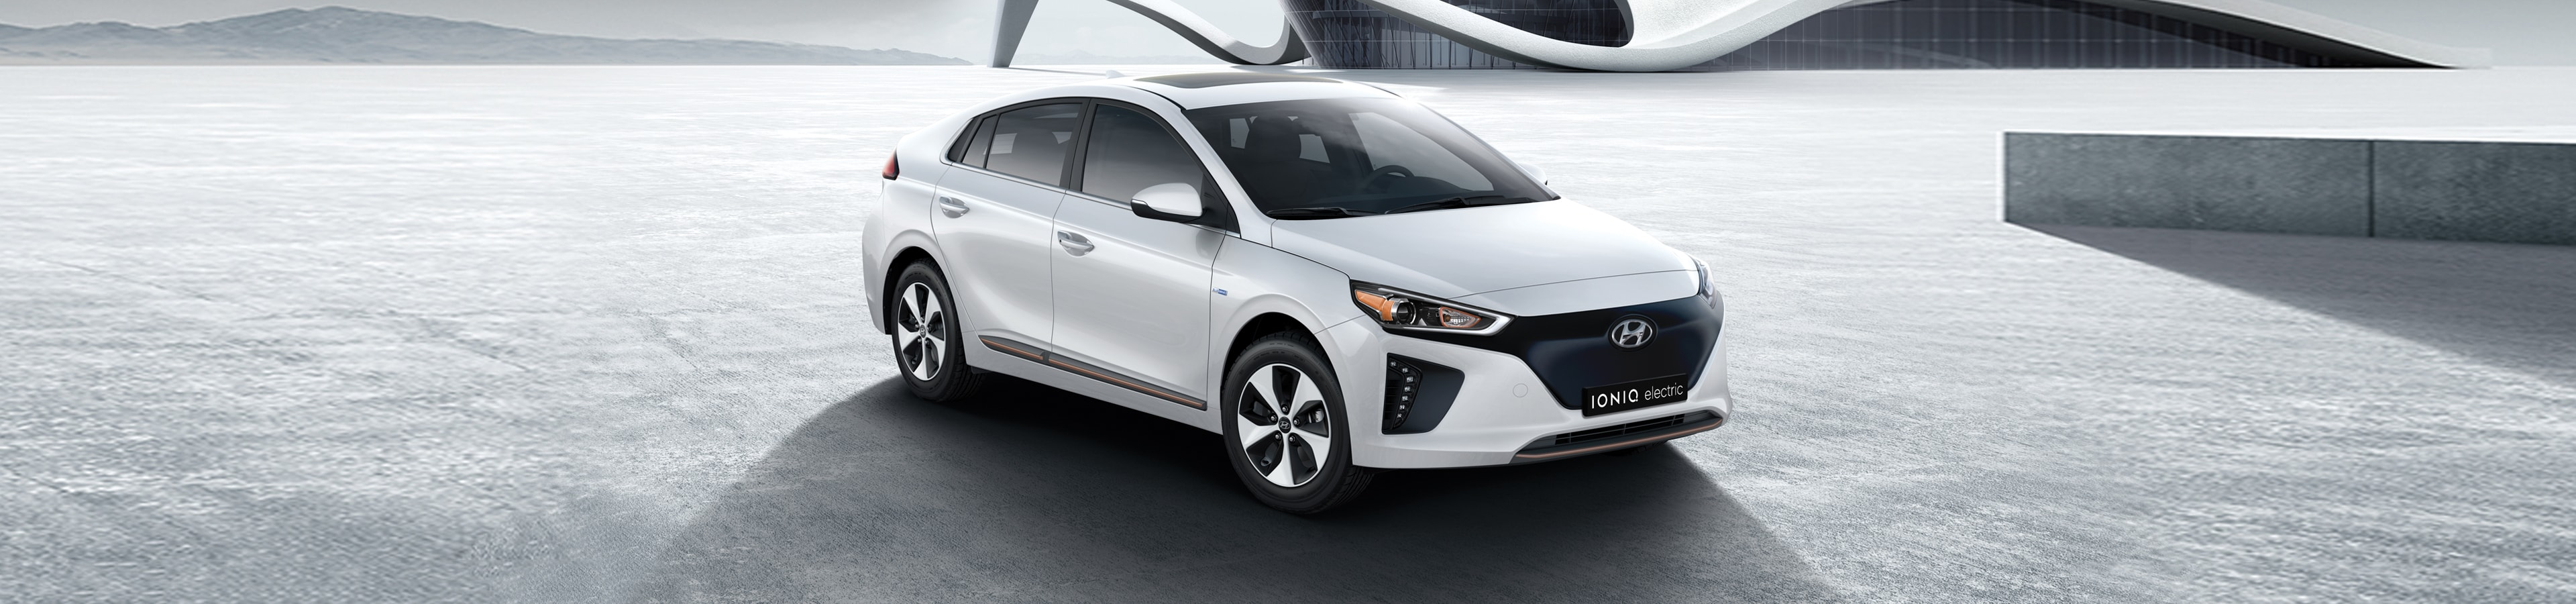 2018 IONIQ Electric